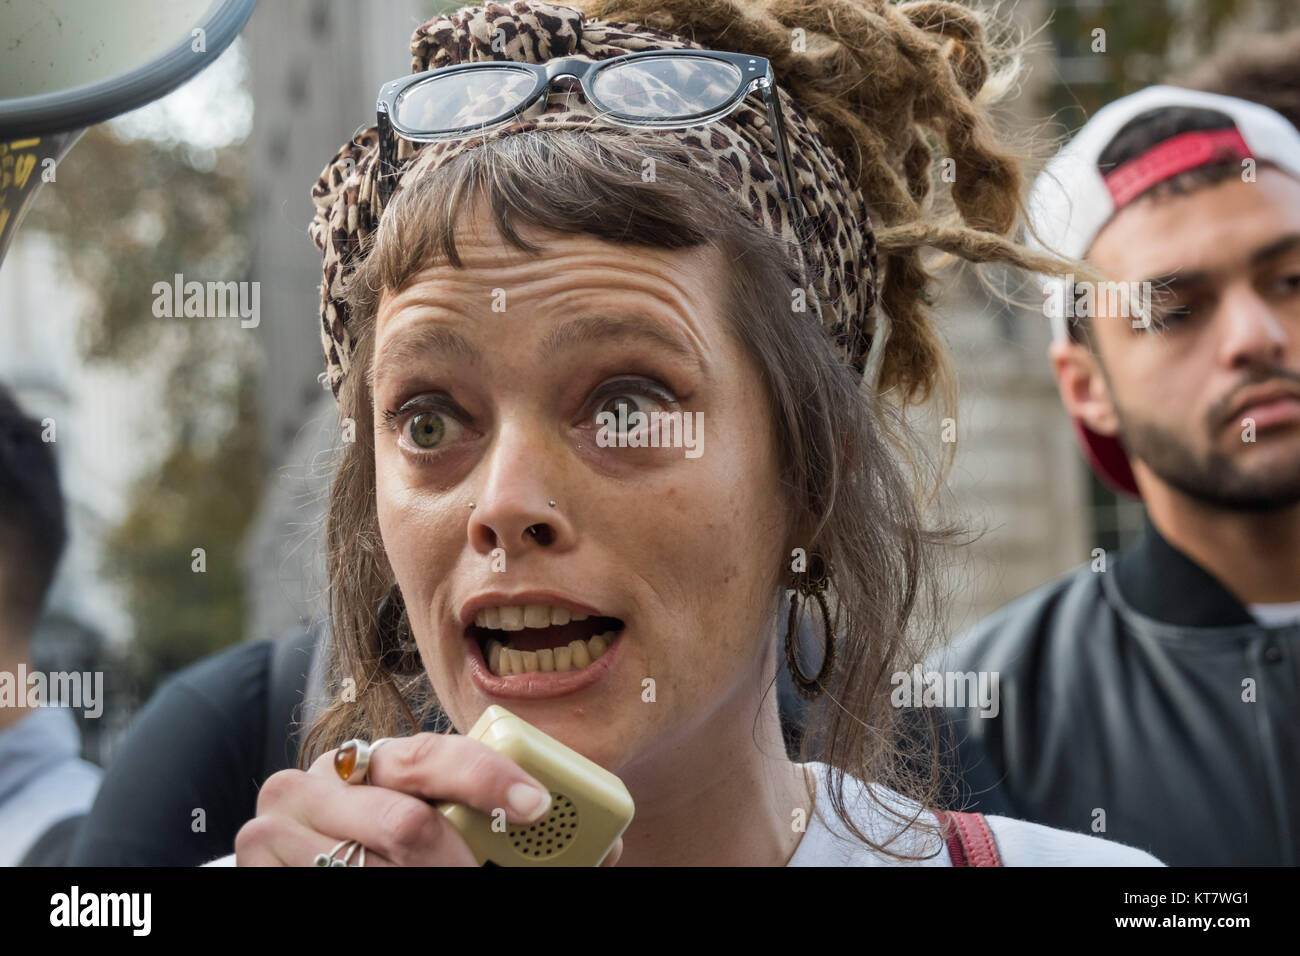 Jo Orchard, sister of Thomas Orchard killed in police custody in 2012 speaking at the rally by United Friends and - Stock Image